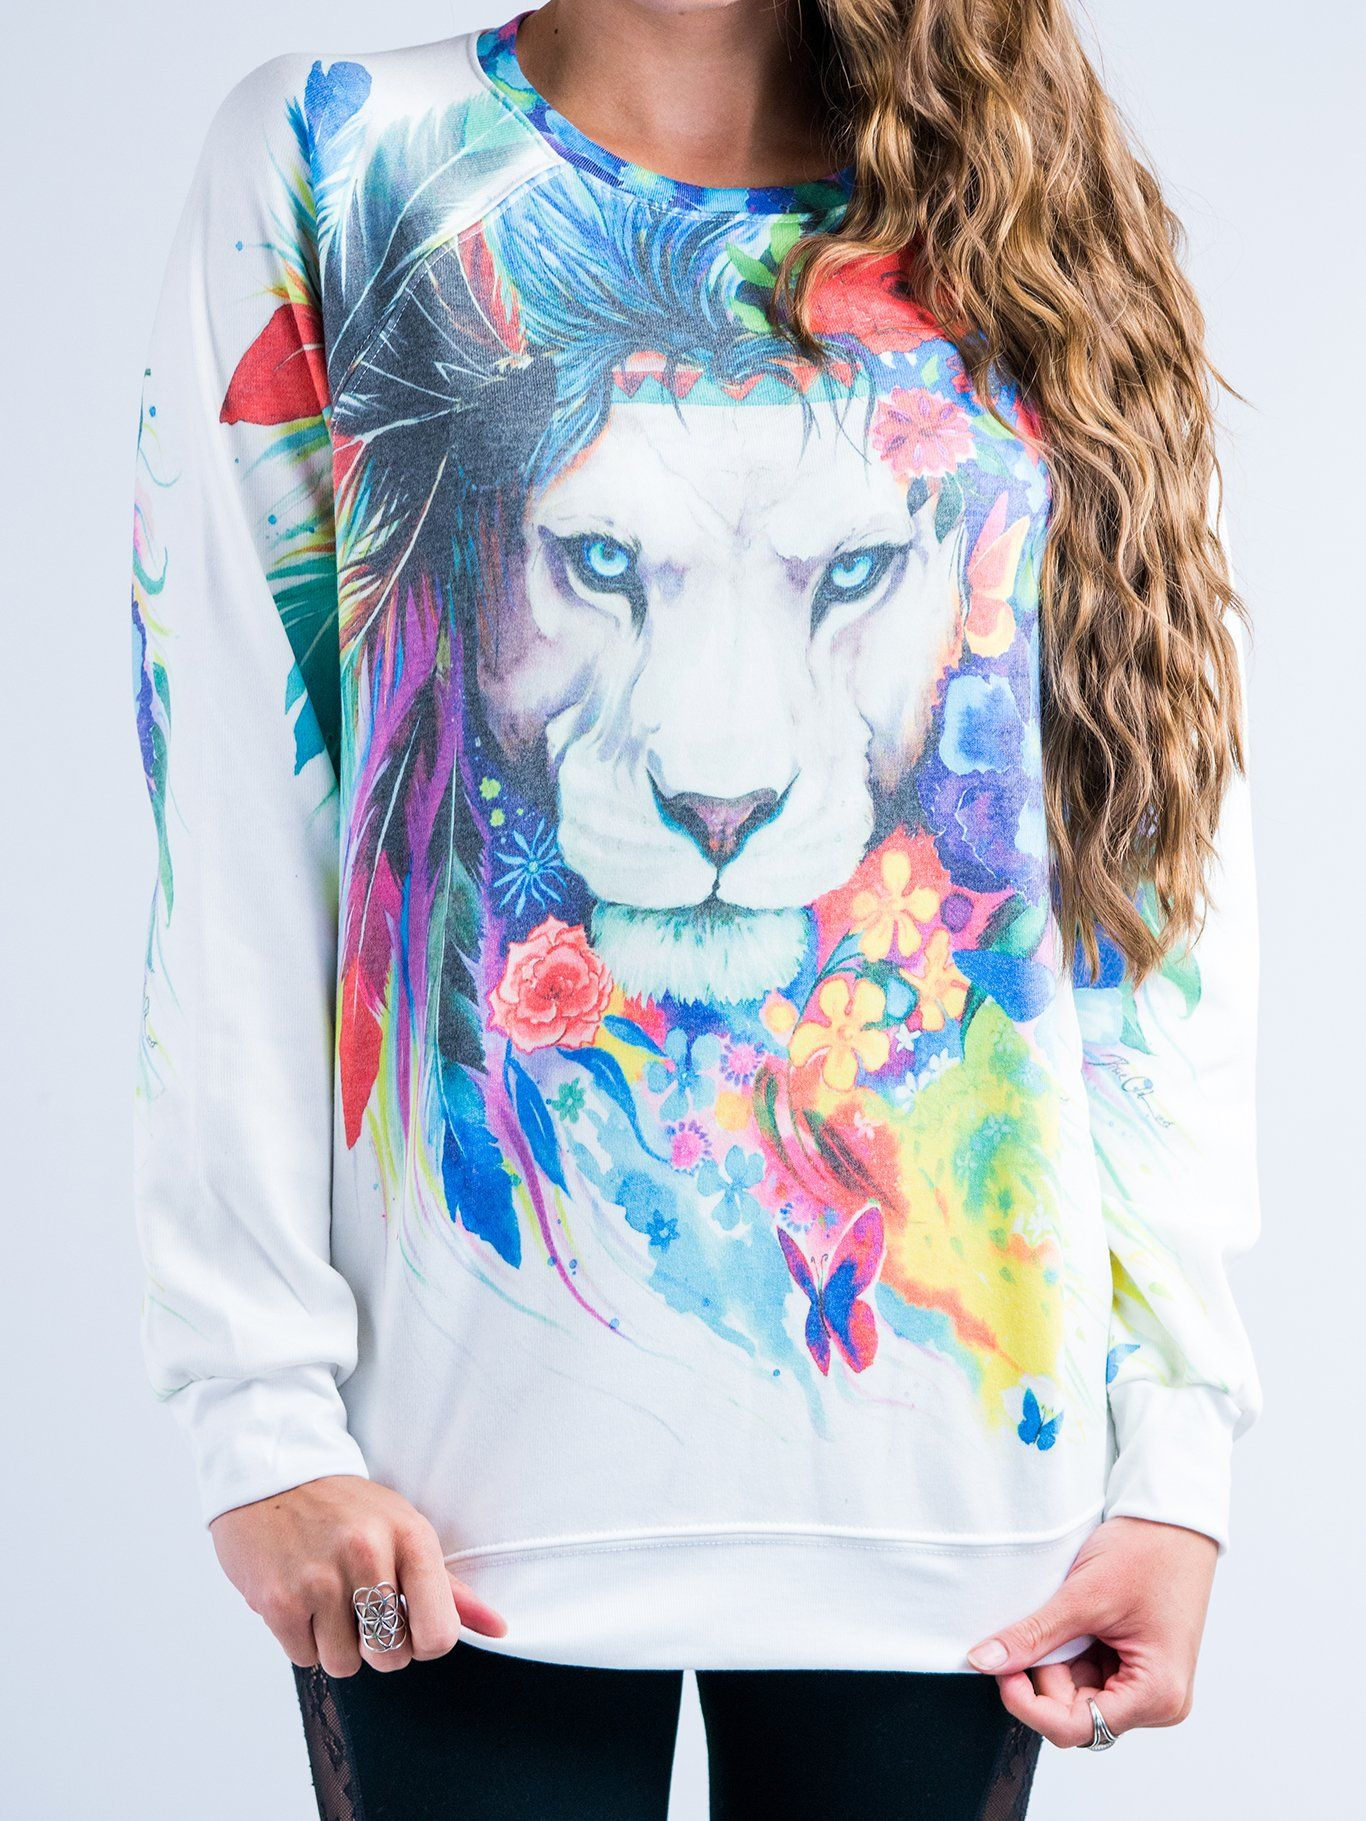 King Of Lions Vintage Sweatshirt Sweatshirt T6 XS WHITE